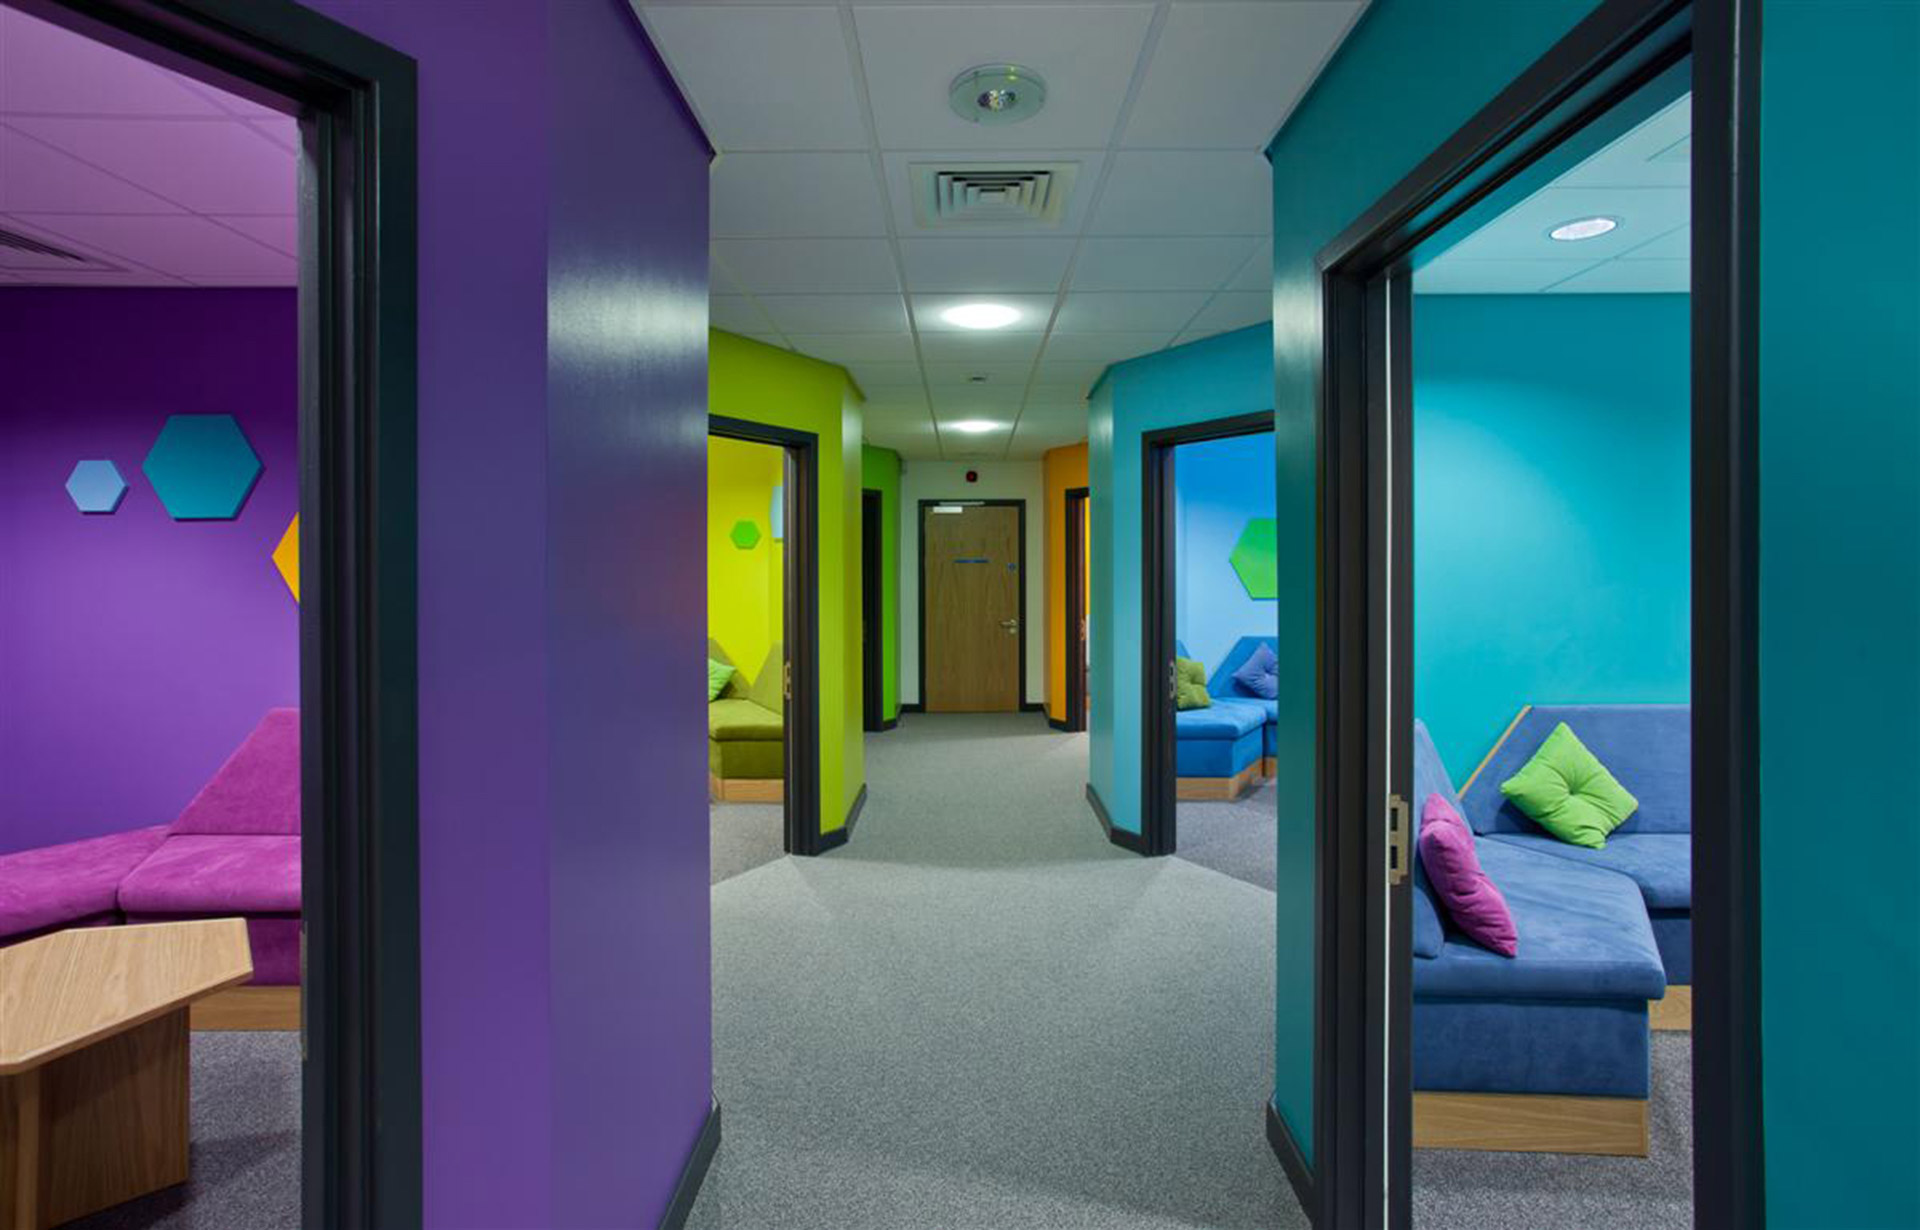 Infection compliant upholstery used in colourful private consultation rooms